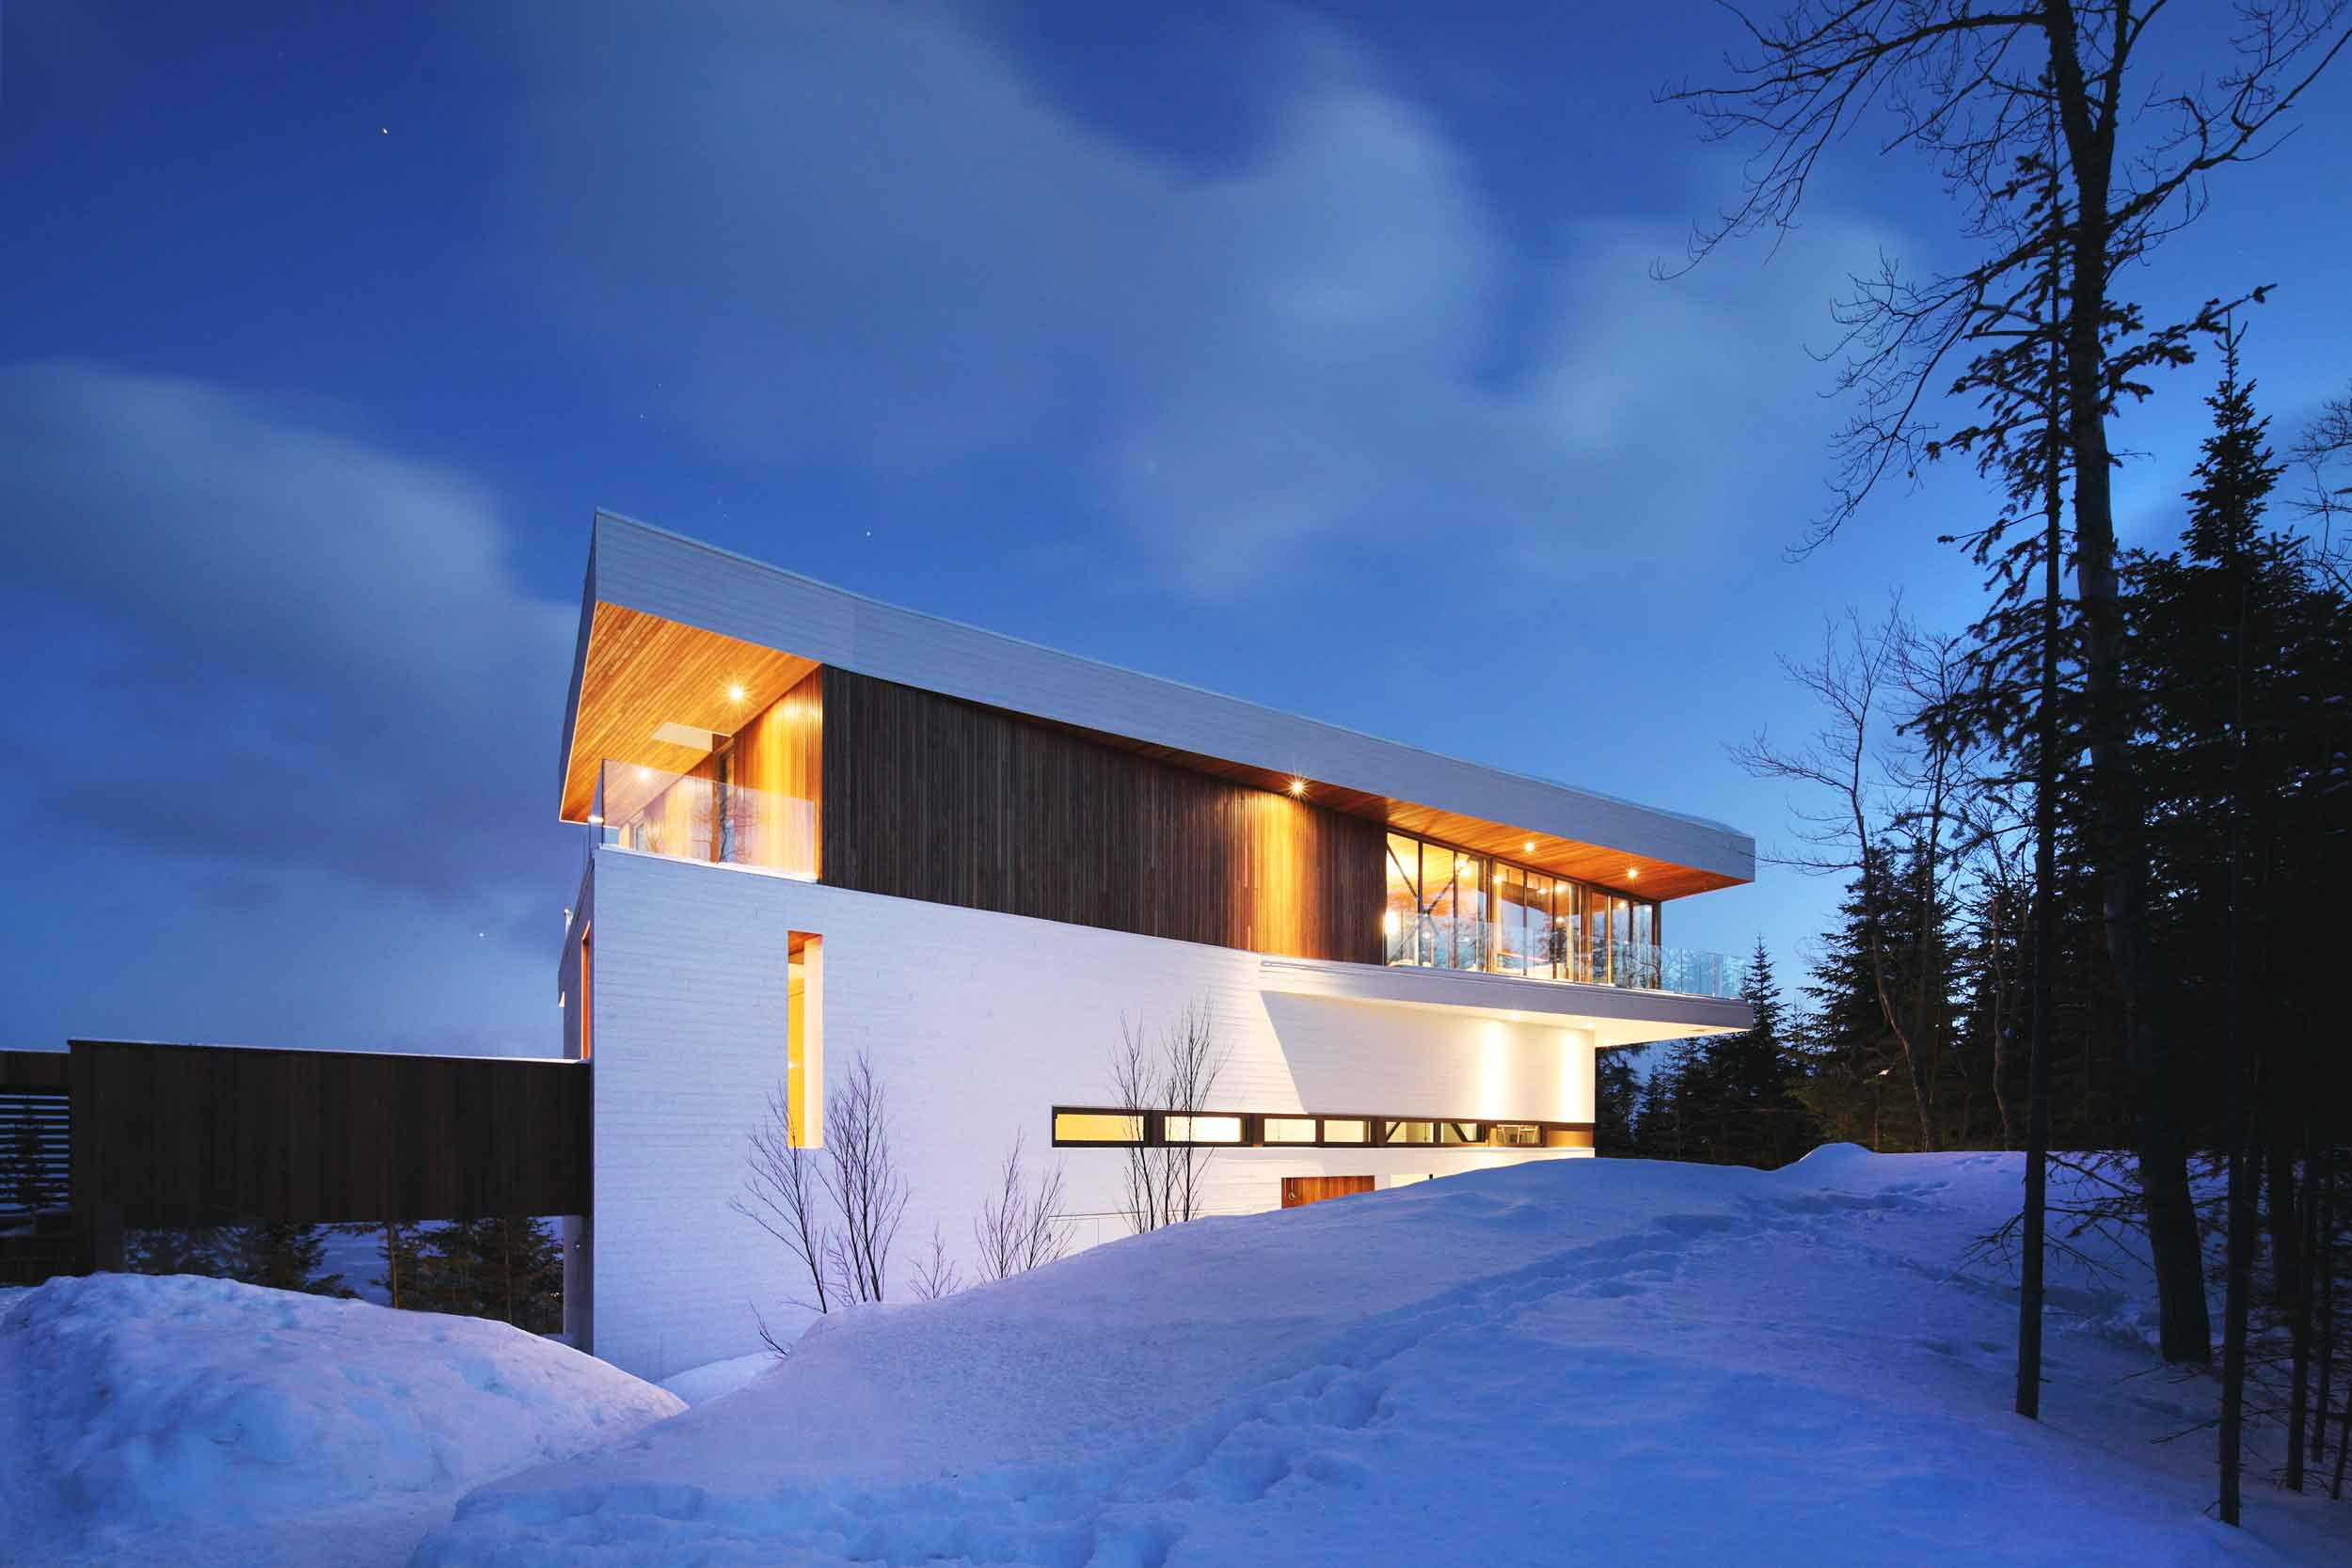 This striking contemporary home overlooking the Massif ski area in Charlevoix, Quebec, was designed by Bourgeois/Lechasseur Architectes and is the recipient of the 2014 Nobilis prize.